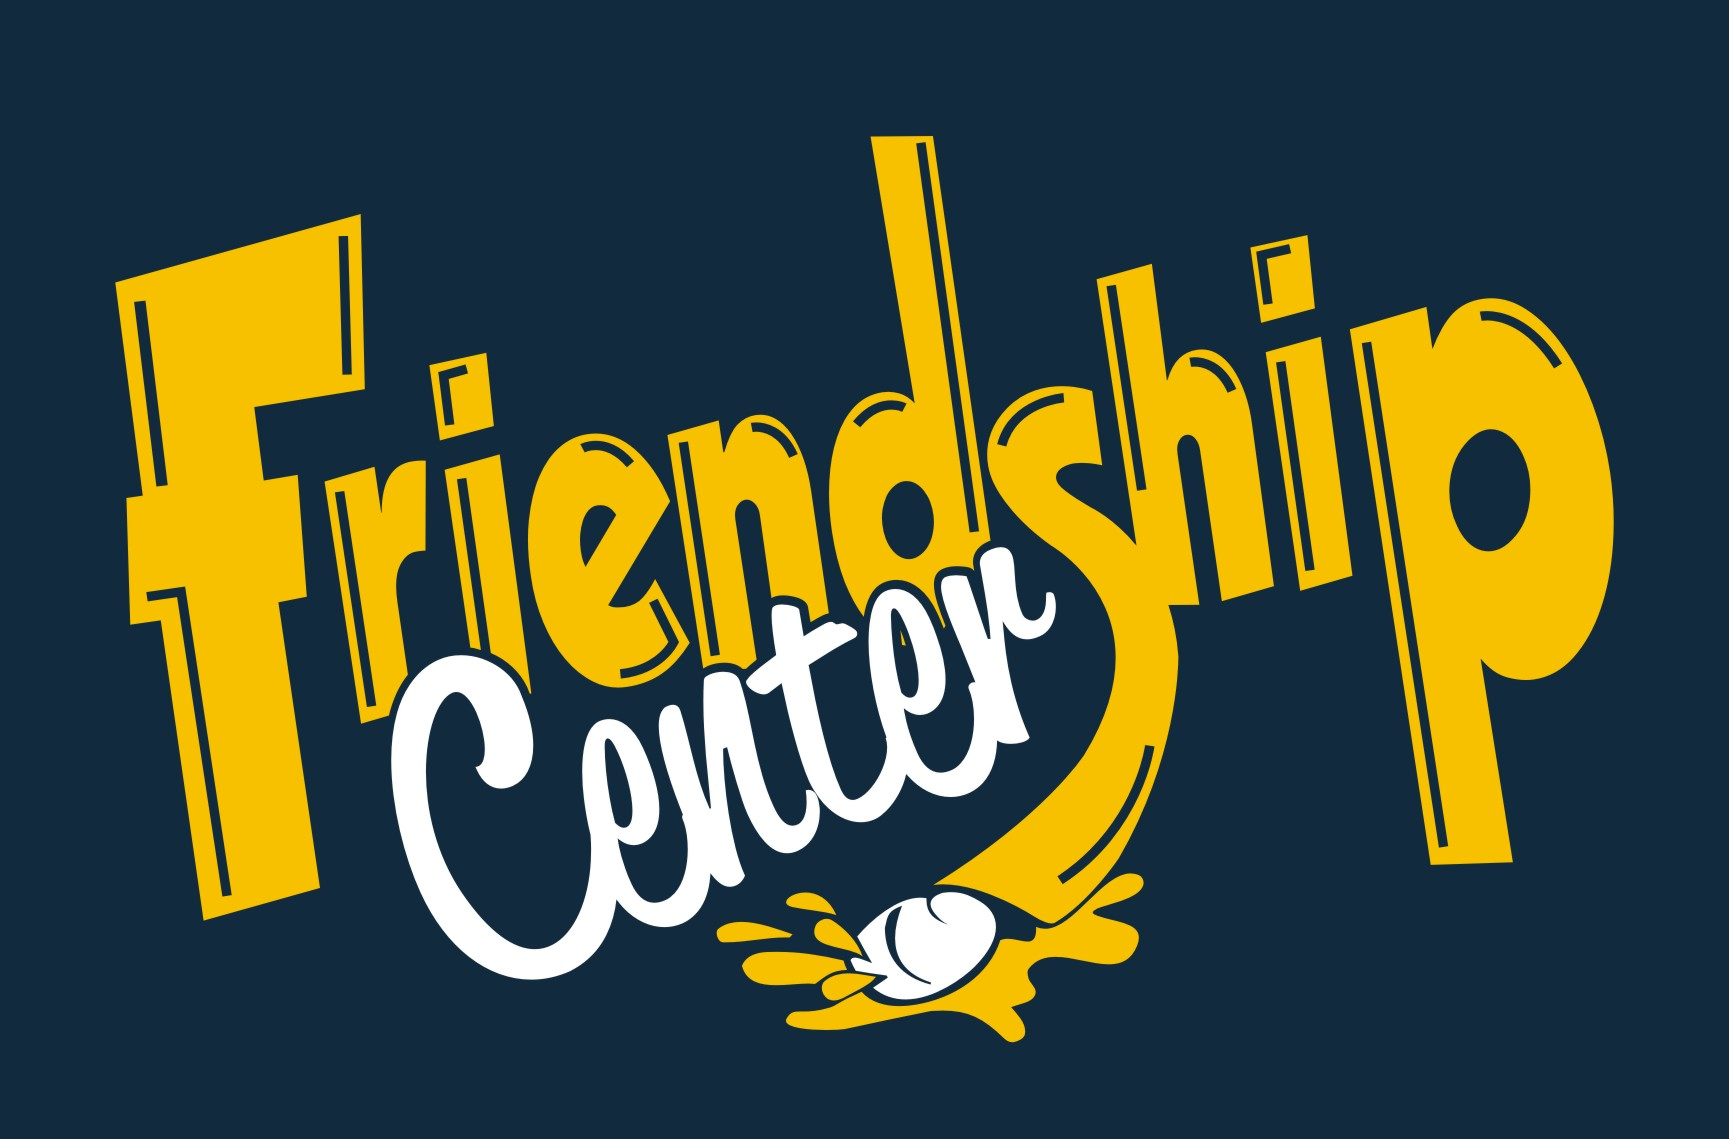 Friendship Center Blue Background.jpg